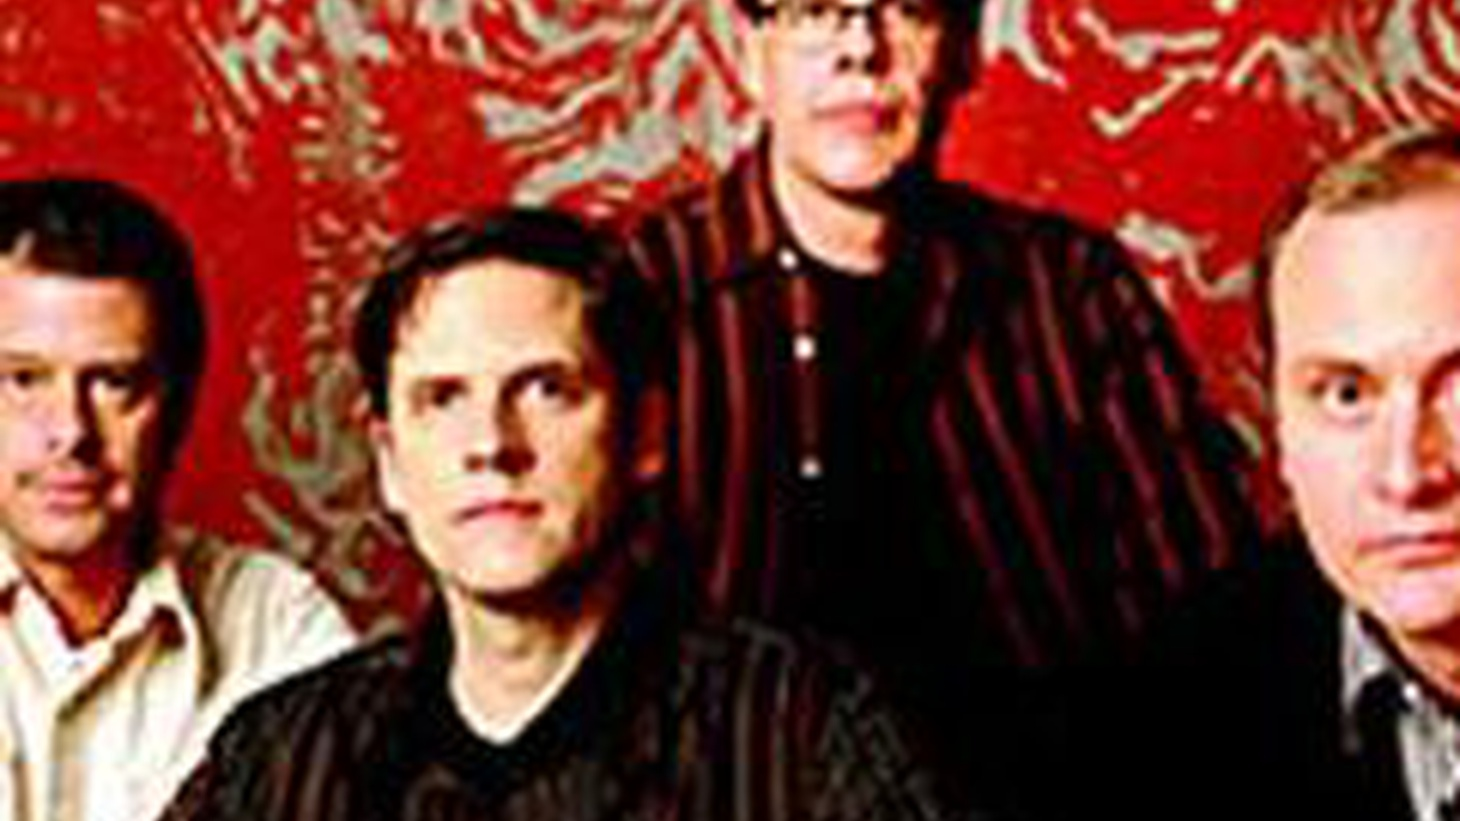 Tucson collective Calexico perform songs with a Southwestern feel on Morning Becomes Eclectic.